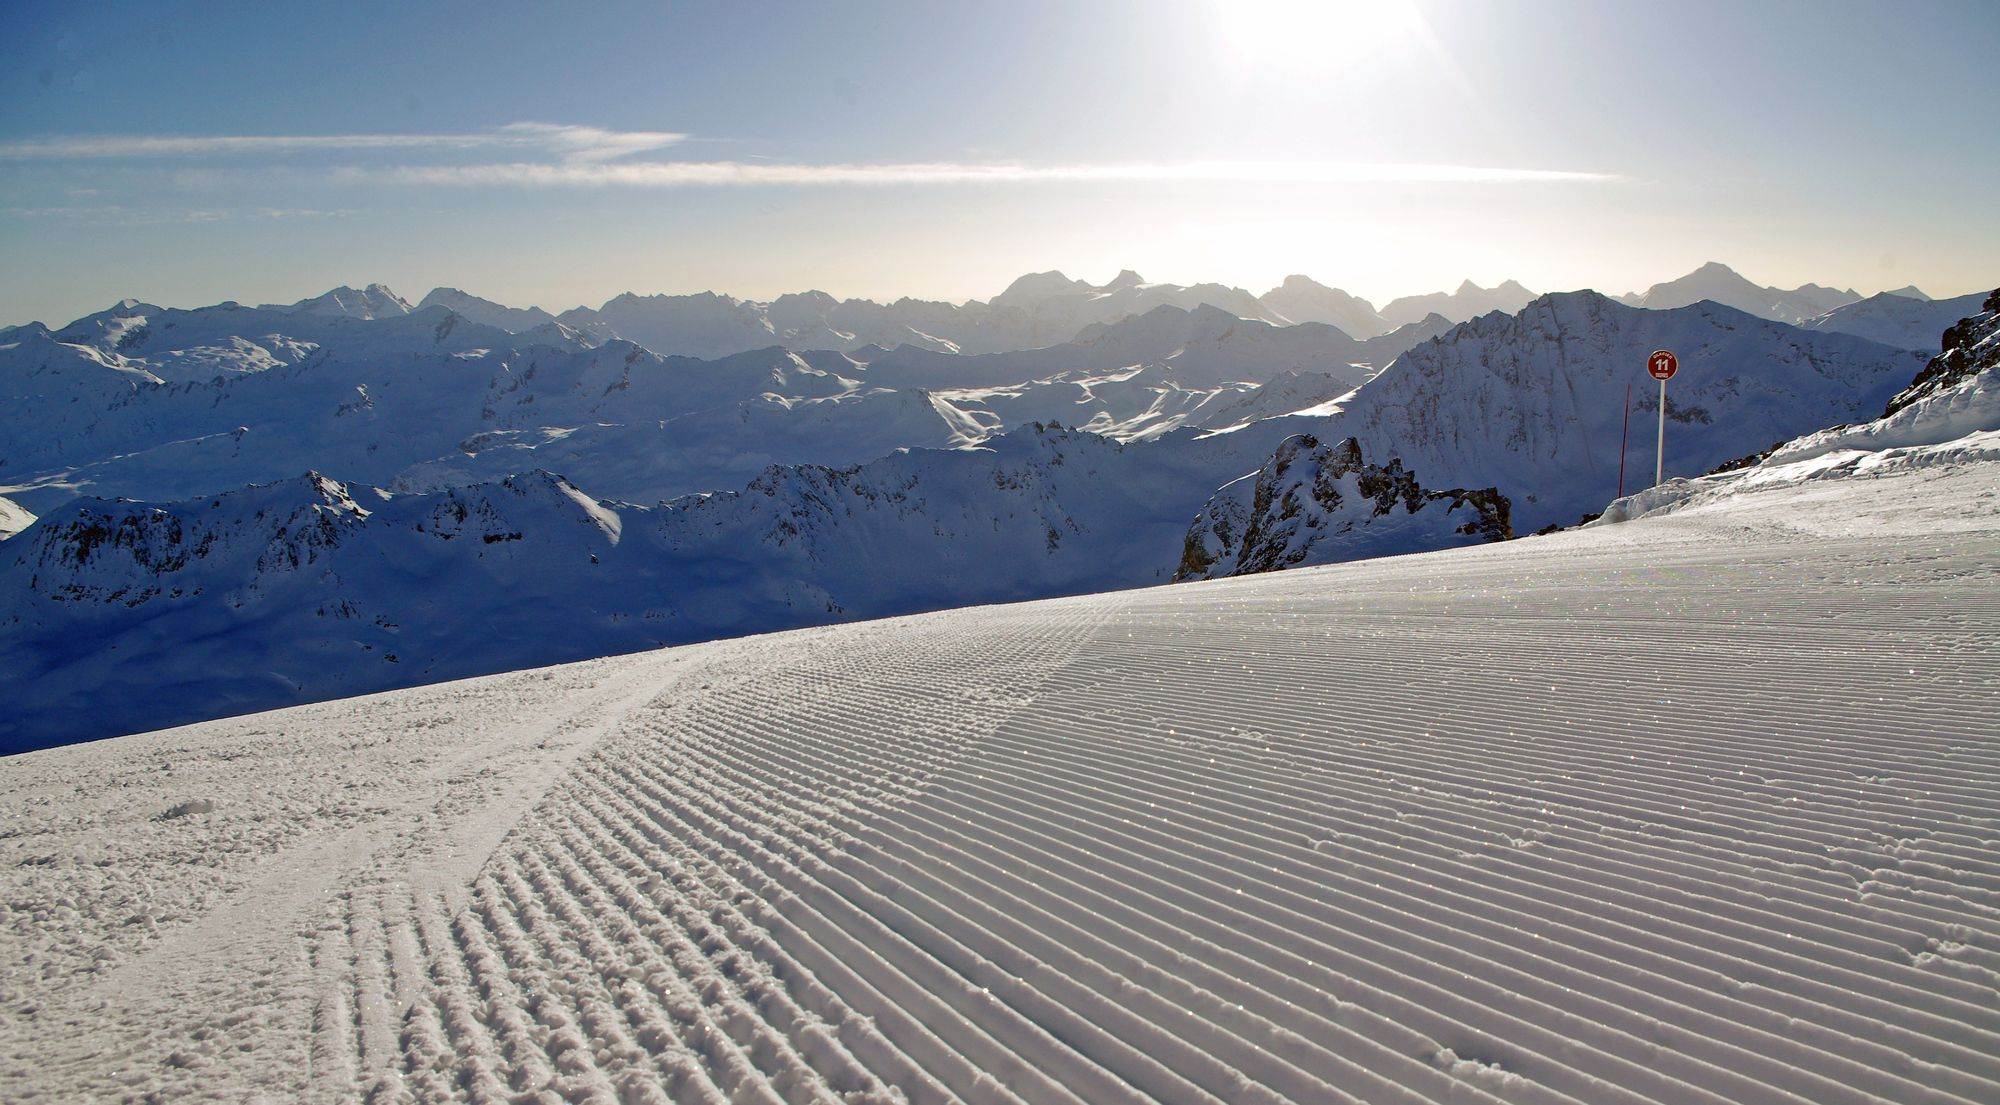 Treat yourself to the most beautiful snows in France, as a family